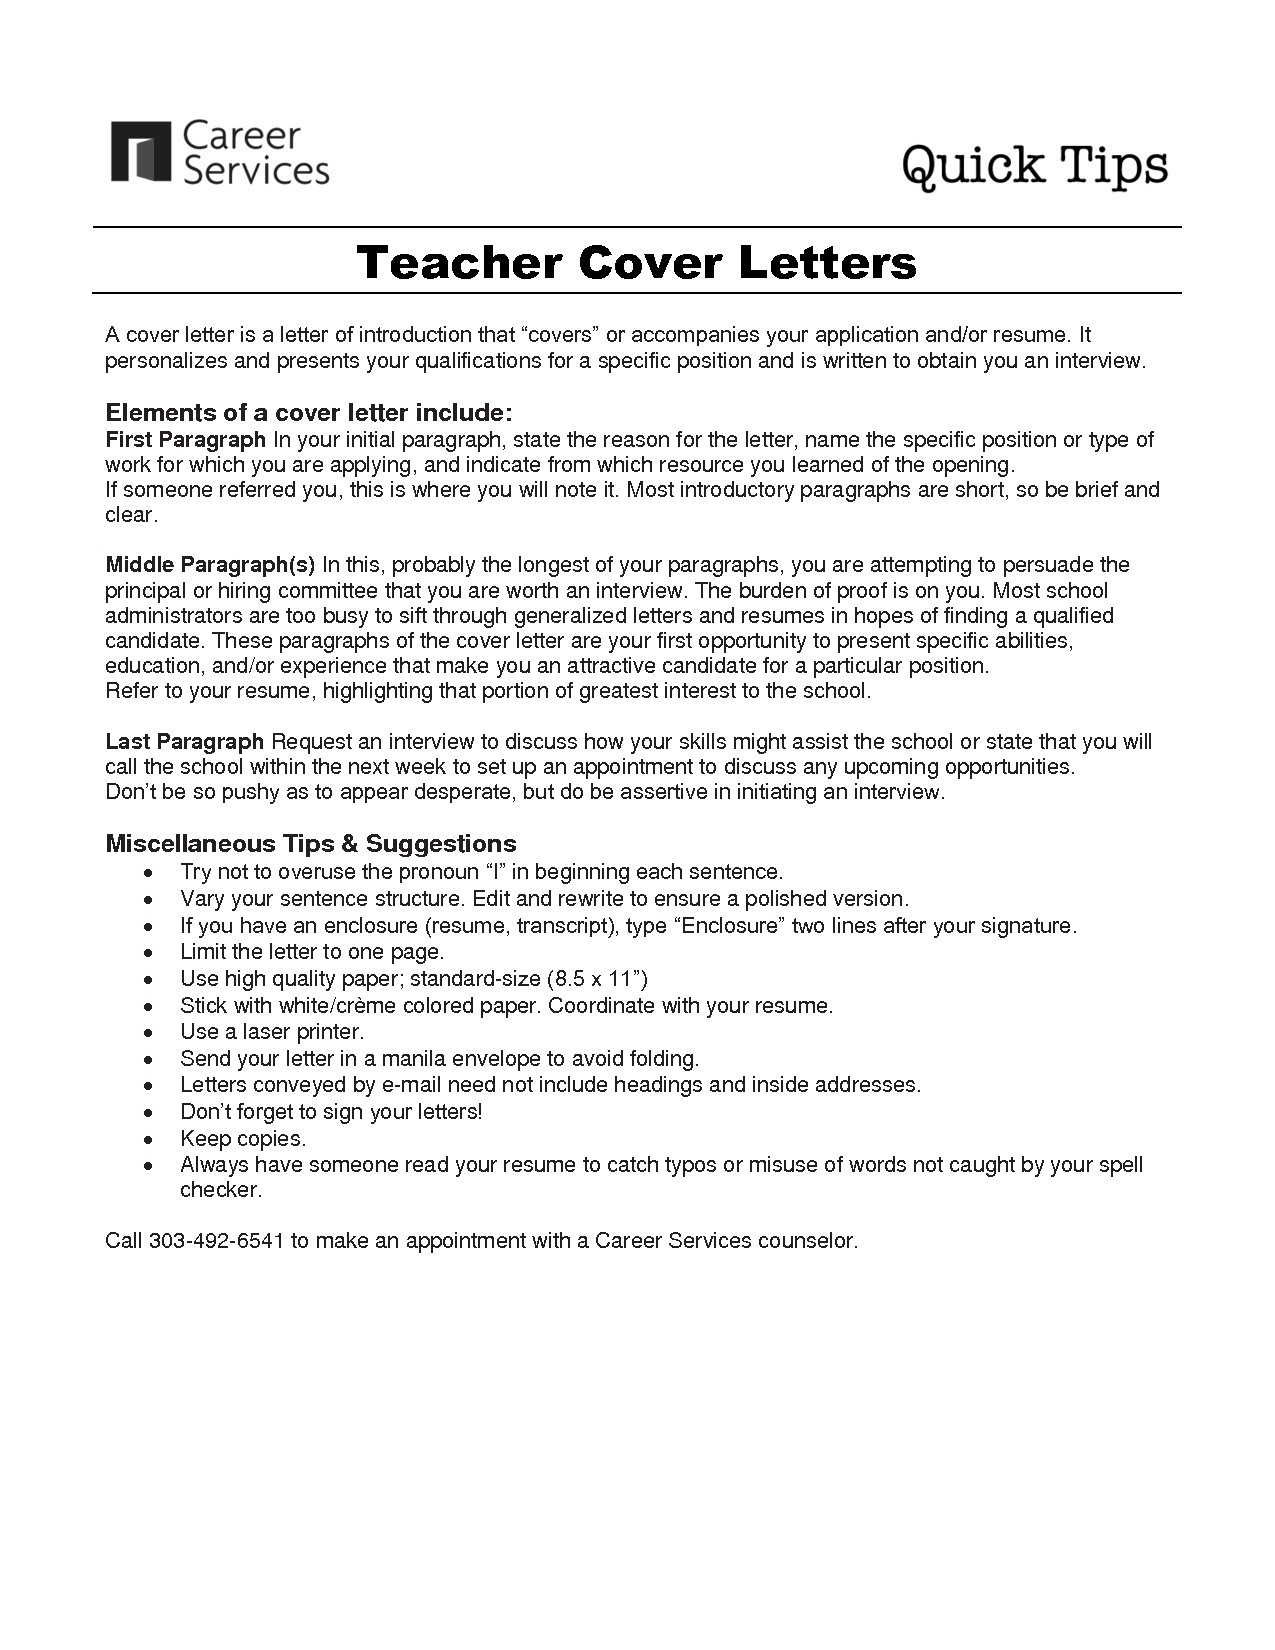 Short Cover Letter Template - Should Cover Letters Be Short